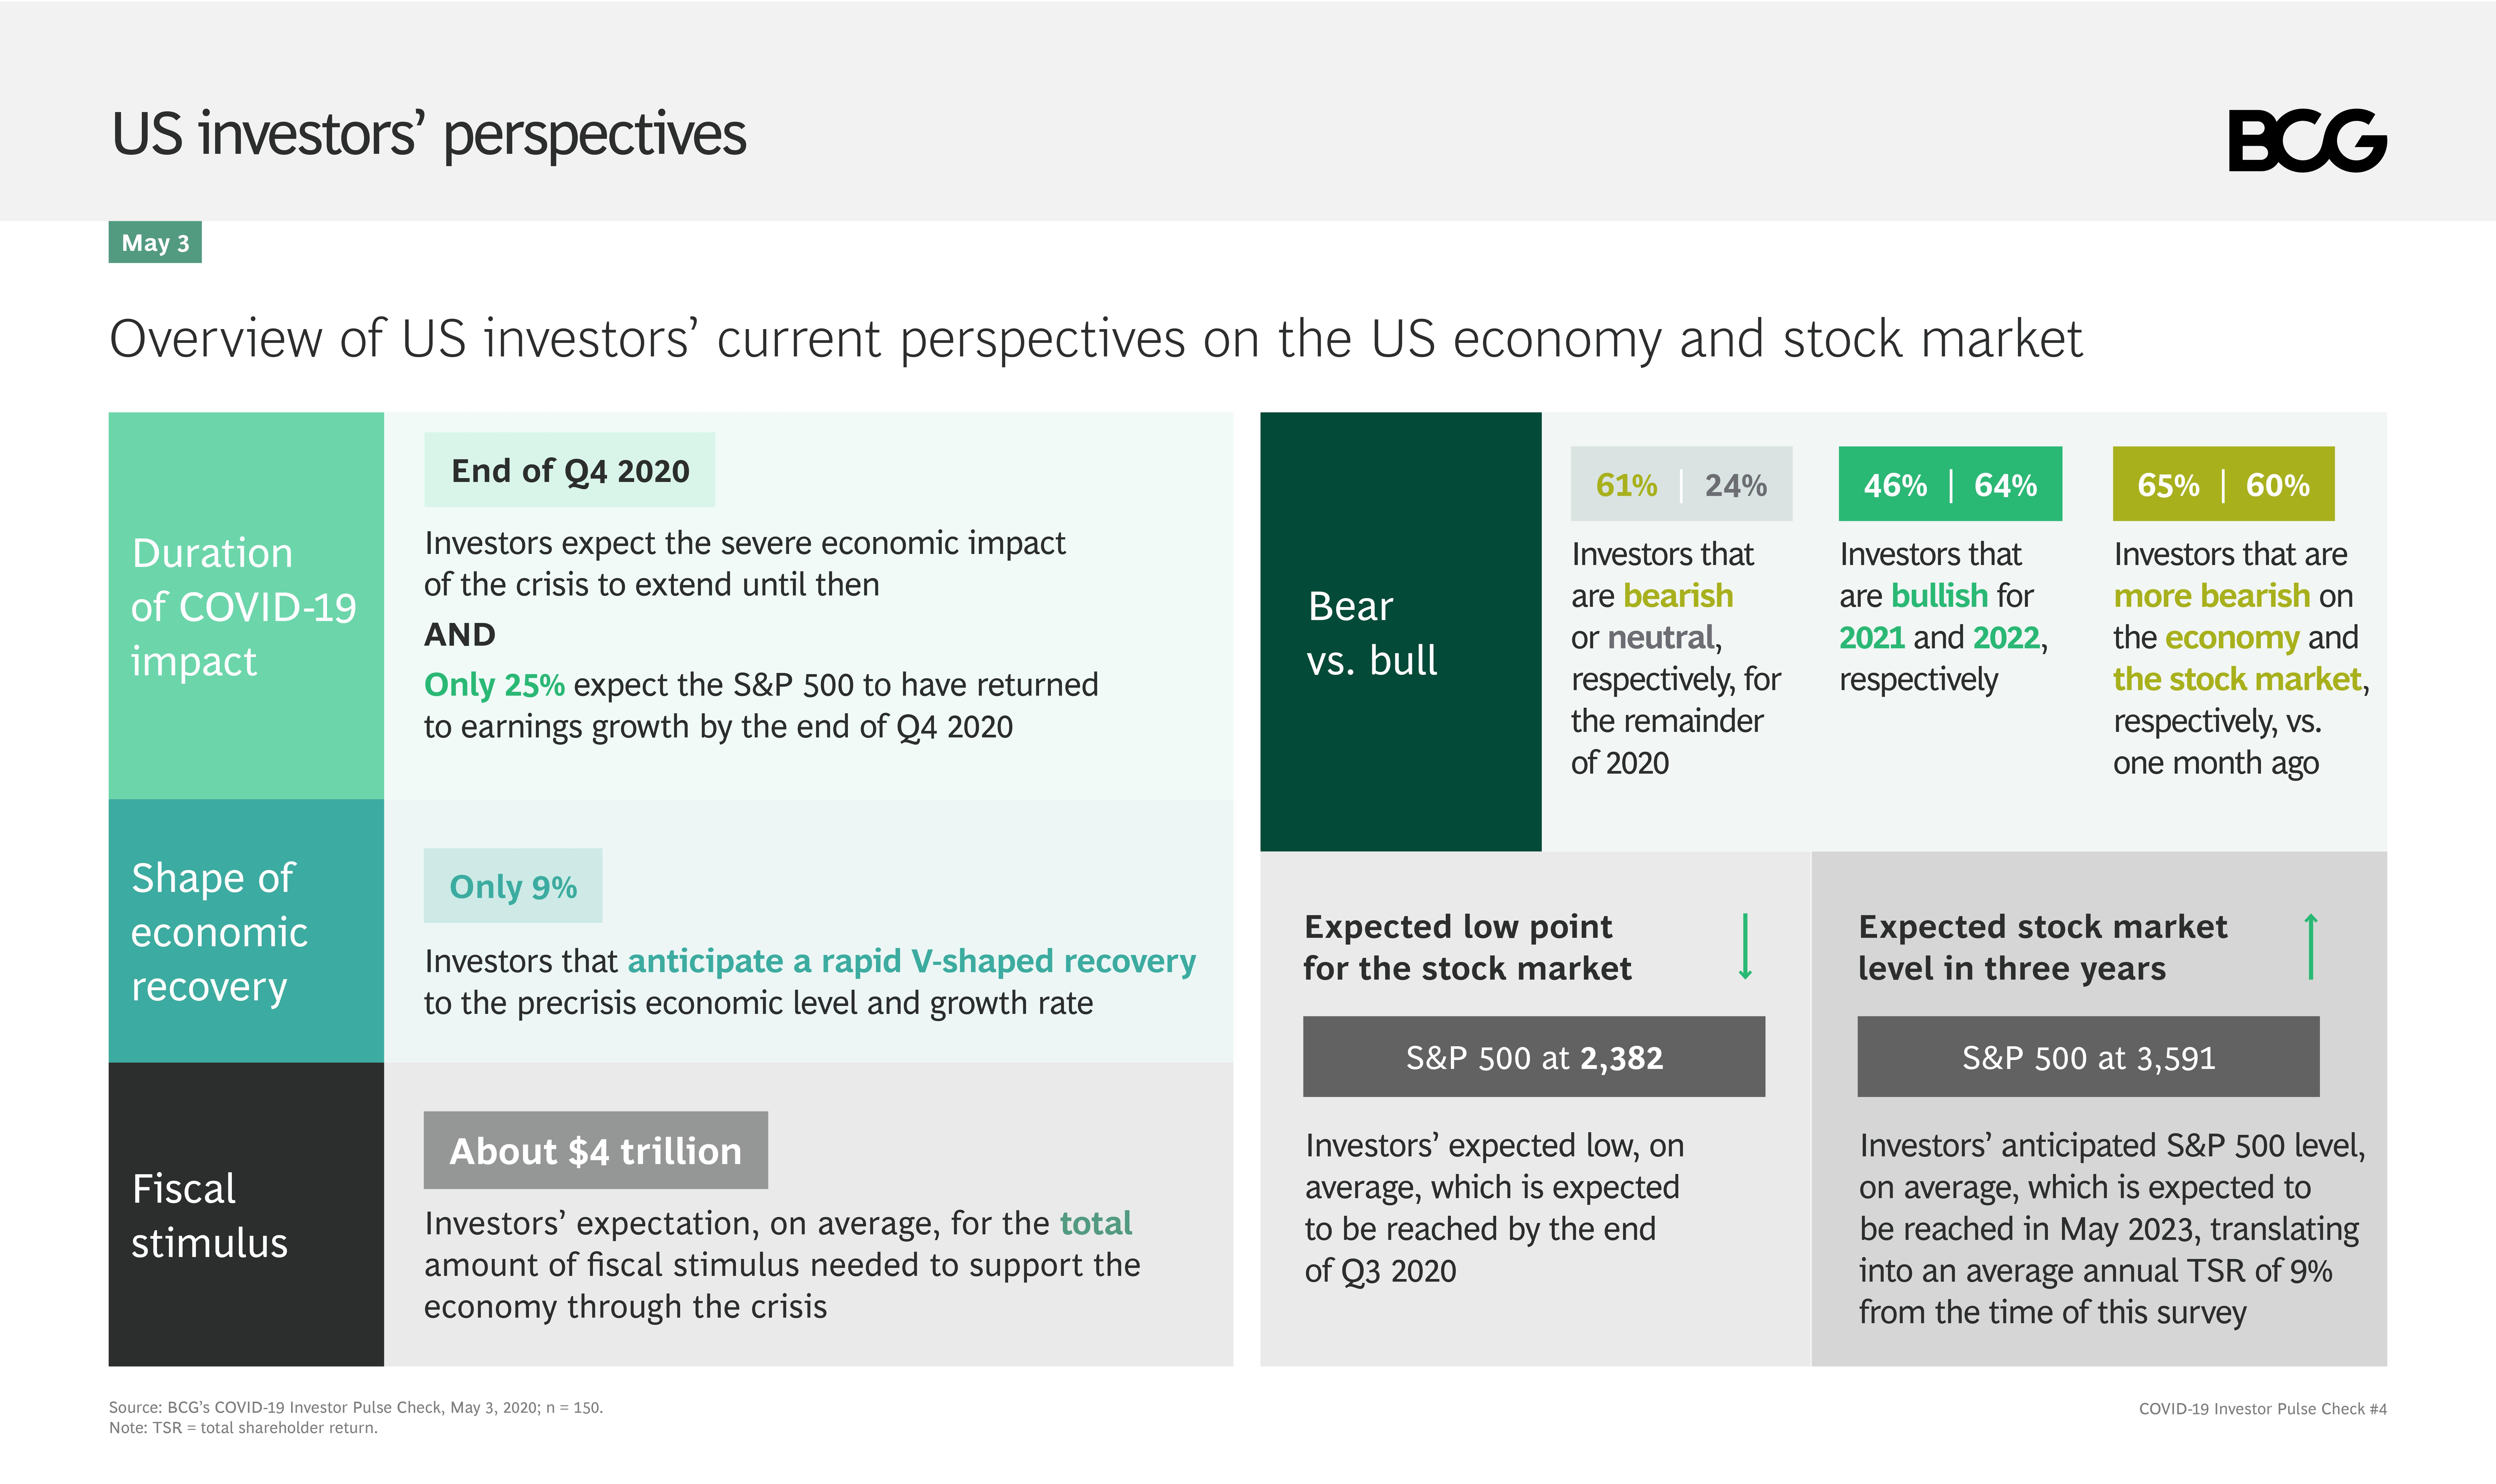 US investors' current perspective on the US economy and stock market during COVID-19